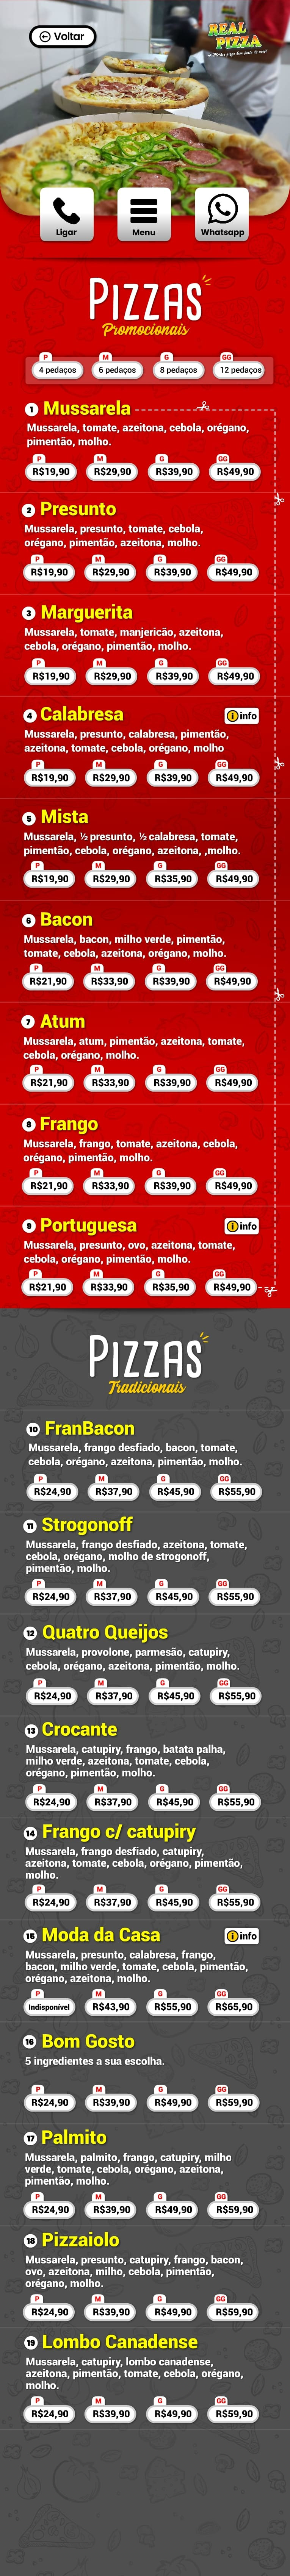 Pizza.Real-Pizza.1.turbopesquisa.com.br.